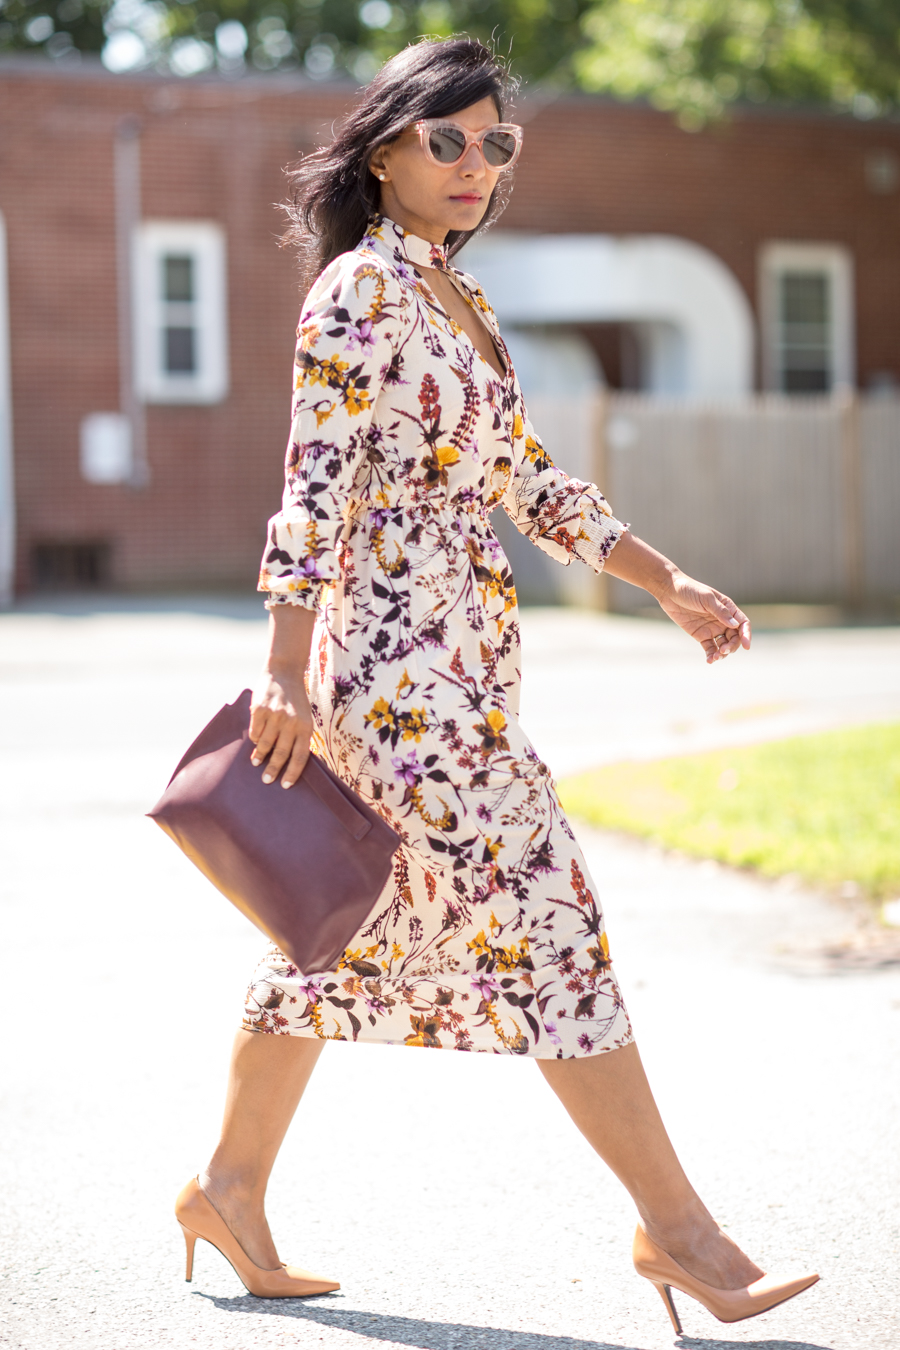 summer style, work style, fall style, office style, workwear, what to wear, petite fashion, style blog, style tips, personal style, wardrobe styling tips, nordstrom, dress for work